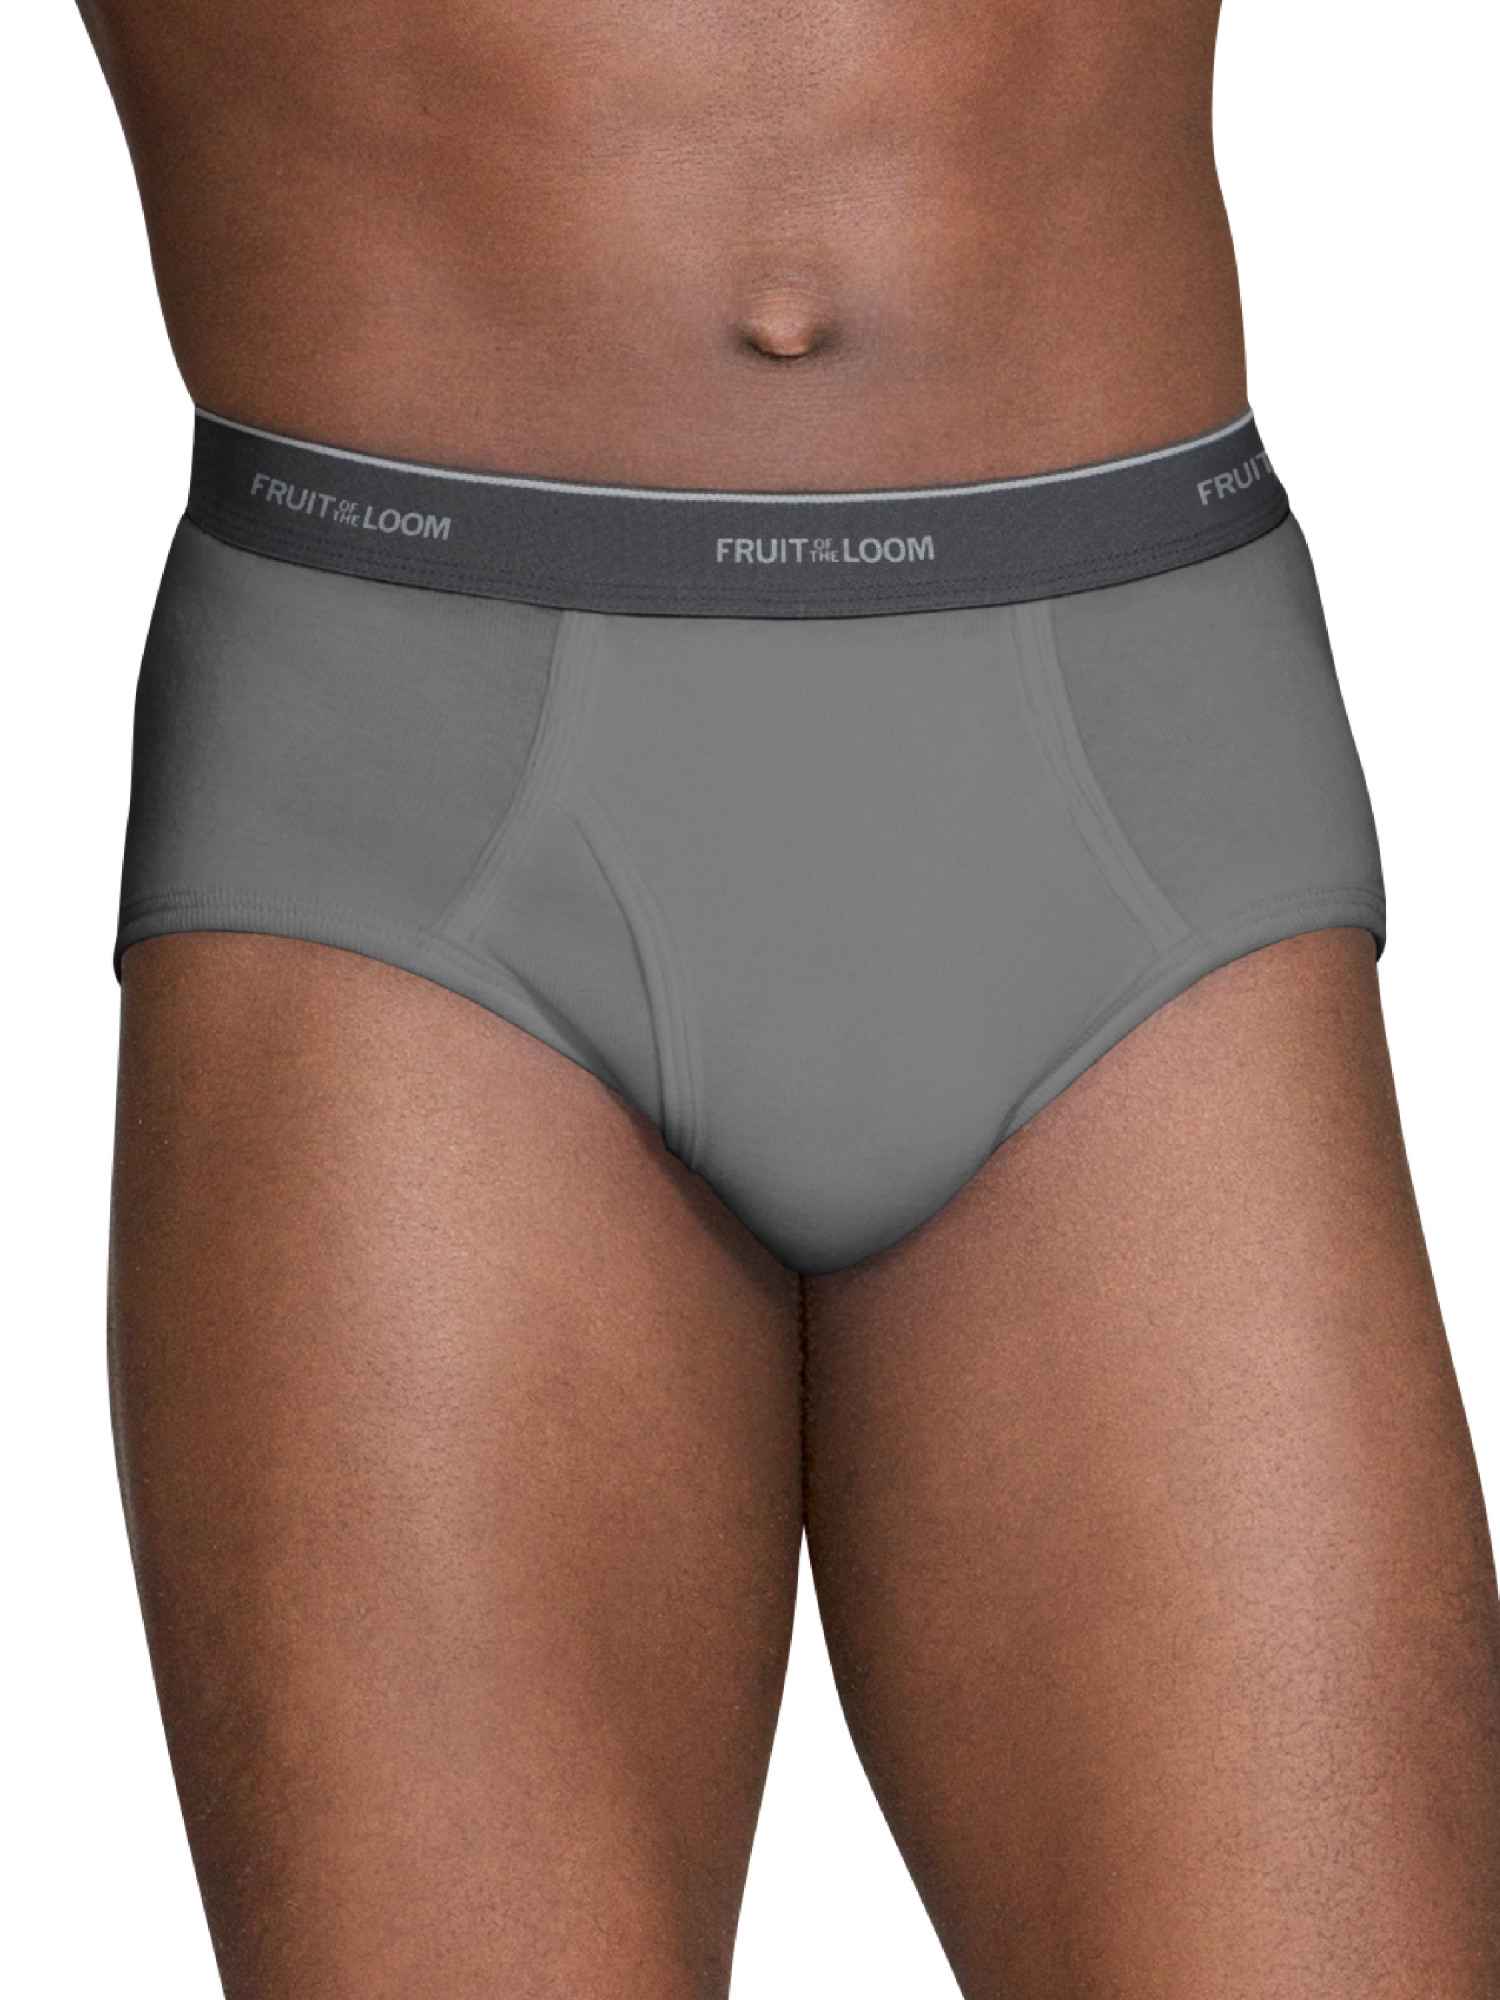 Big Men's Dual Defense Assorted Fashion Brief Extended Sizes, 5 Pack